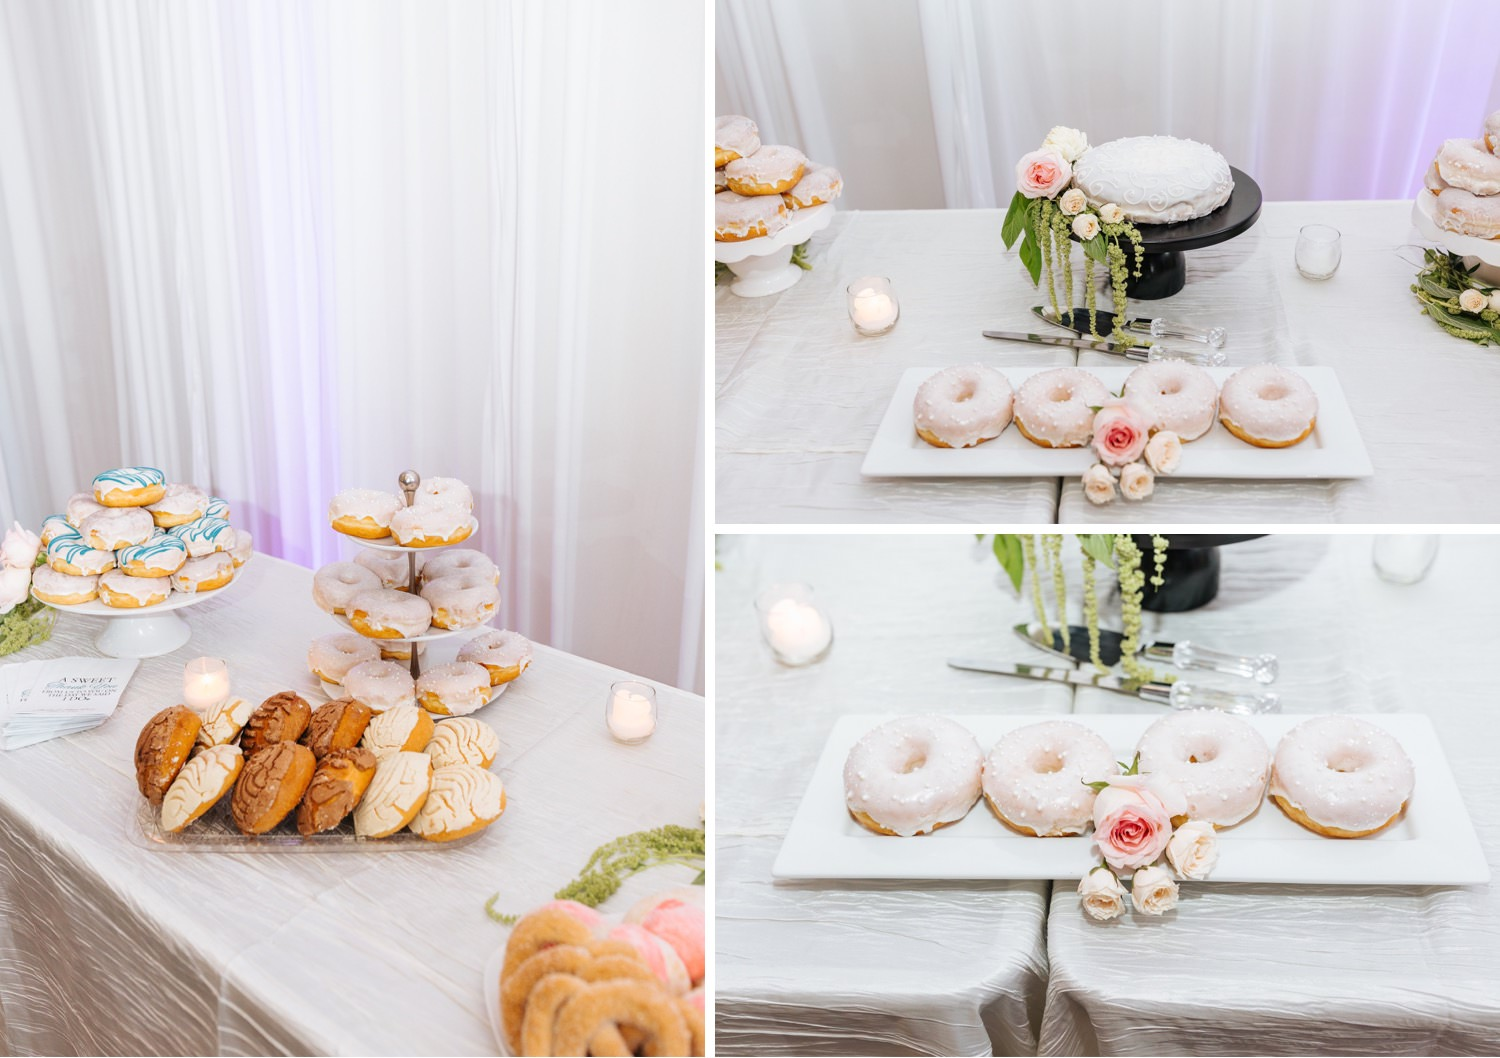 Donut Dessert Bar - Wedding Reception at Chino Hills Community Center - Chino Hills Wedding Photographer - https://brittneyhannonphotography.com